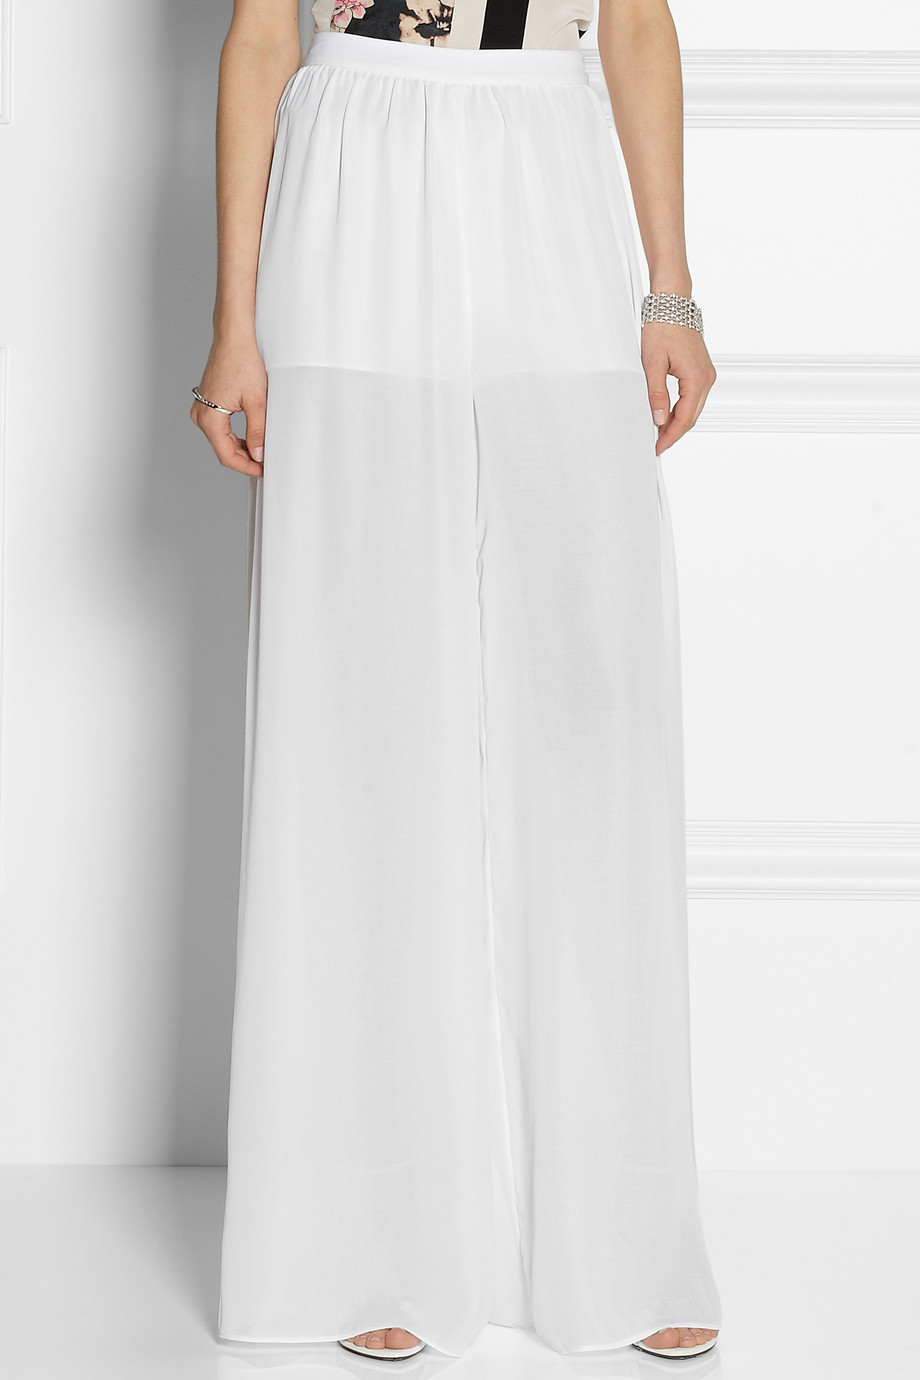 Find great deals on eBay for white chiffon pants. Shop with confidence.